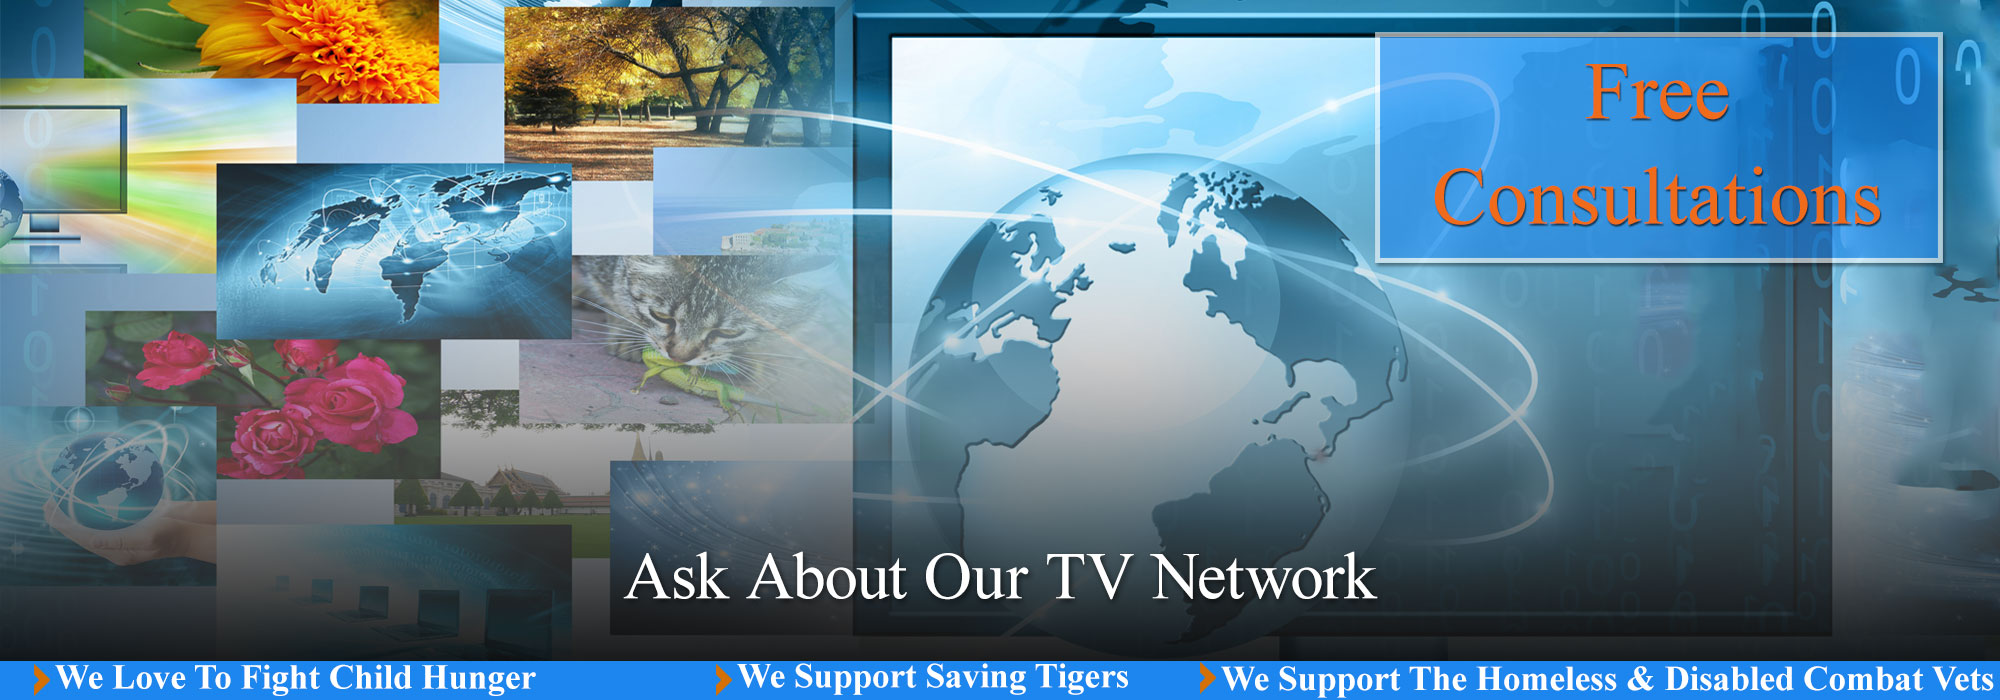 Ask About Our TV Network